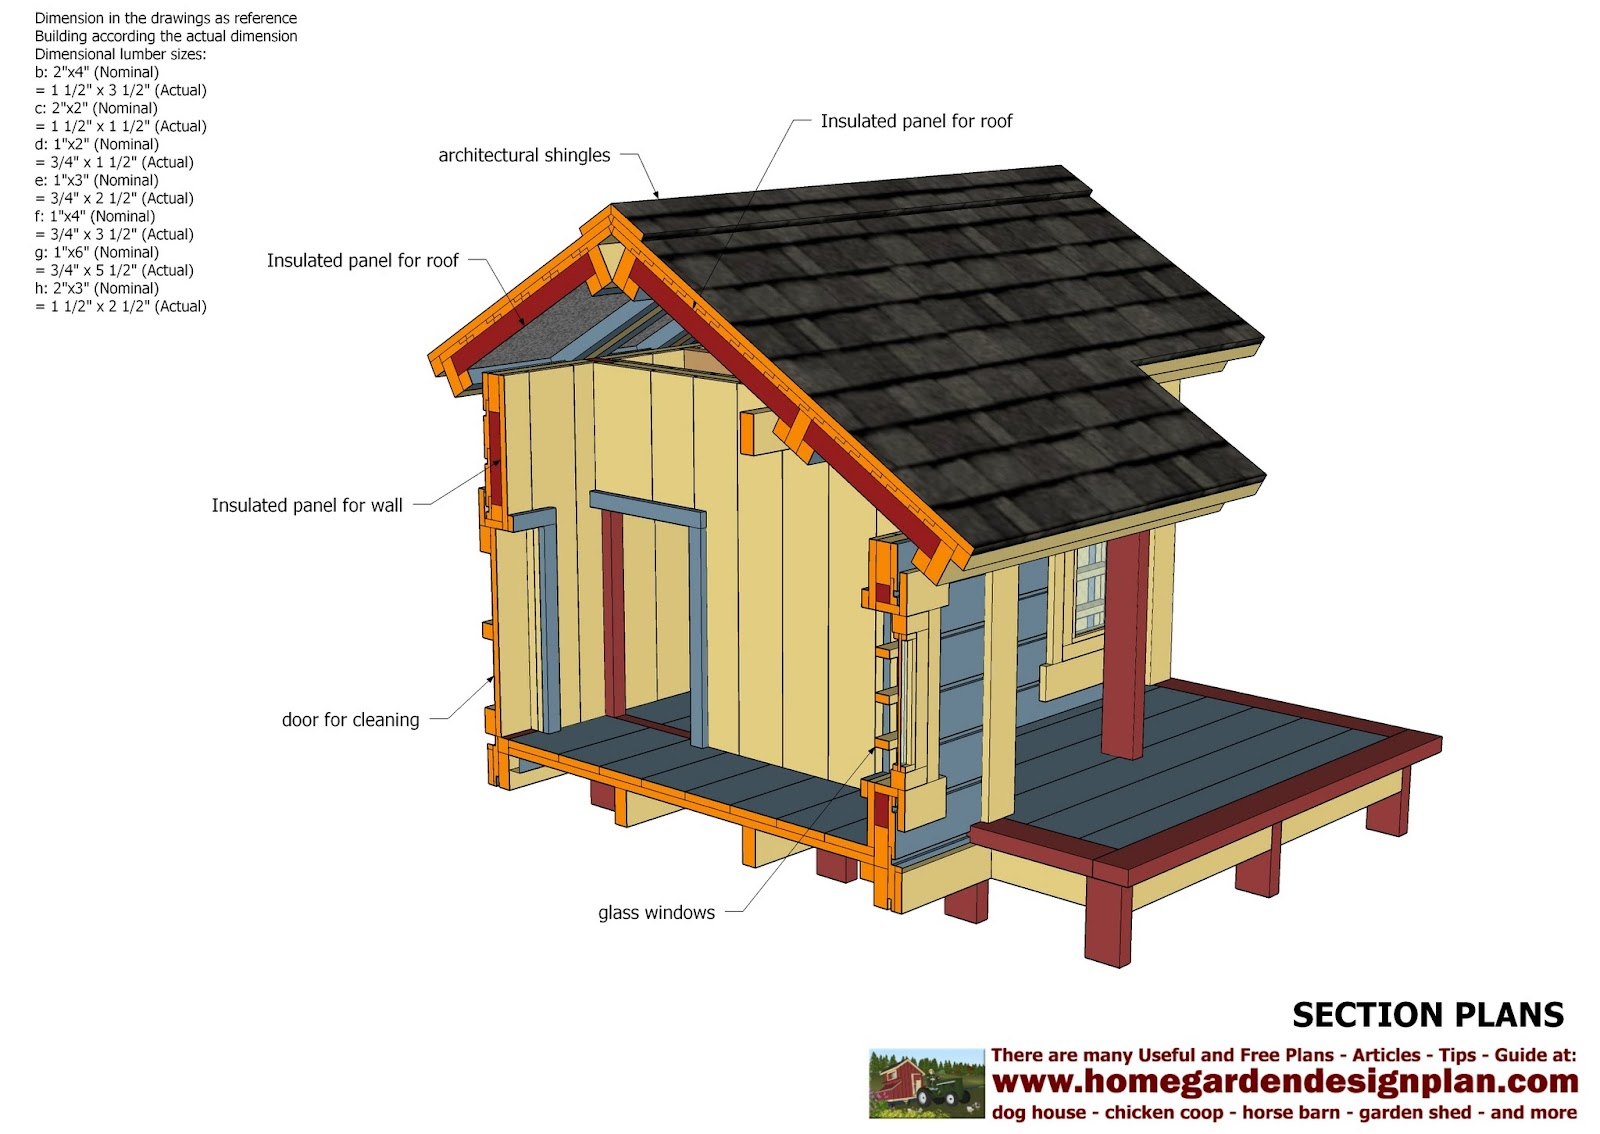 Insulated dog house plans for large dogs free - photo#4